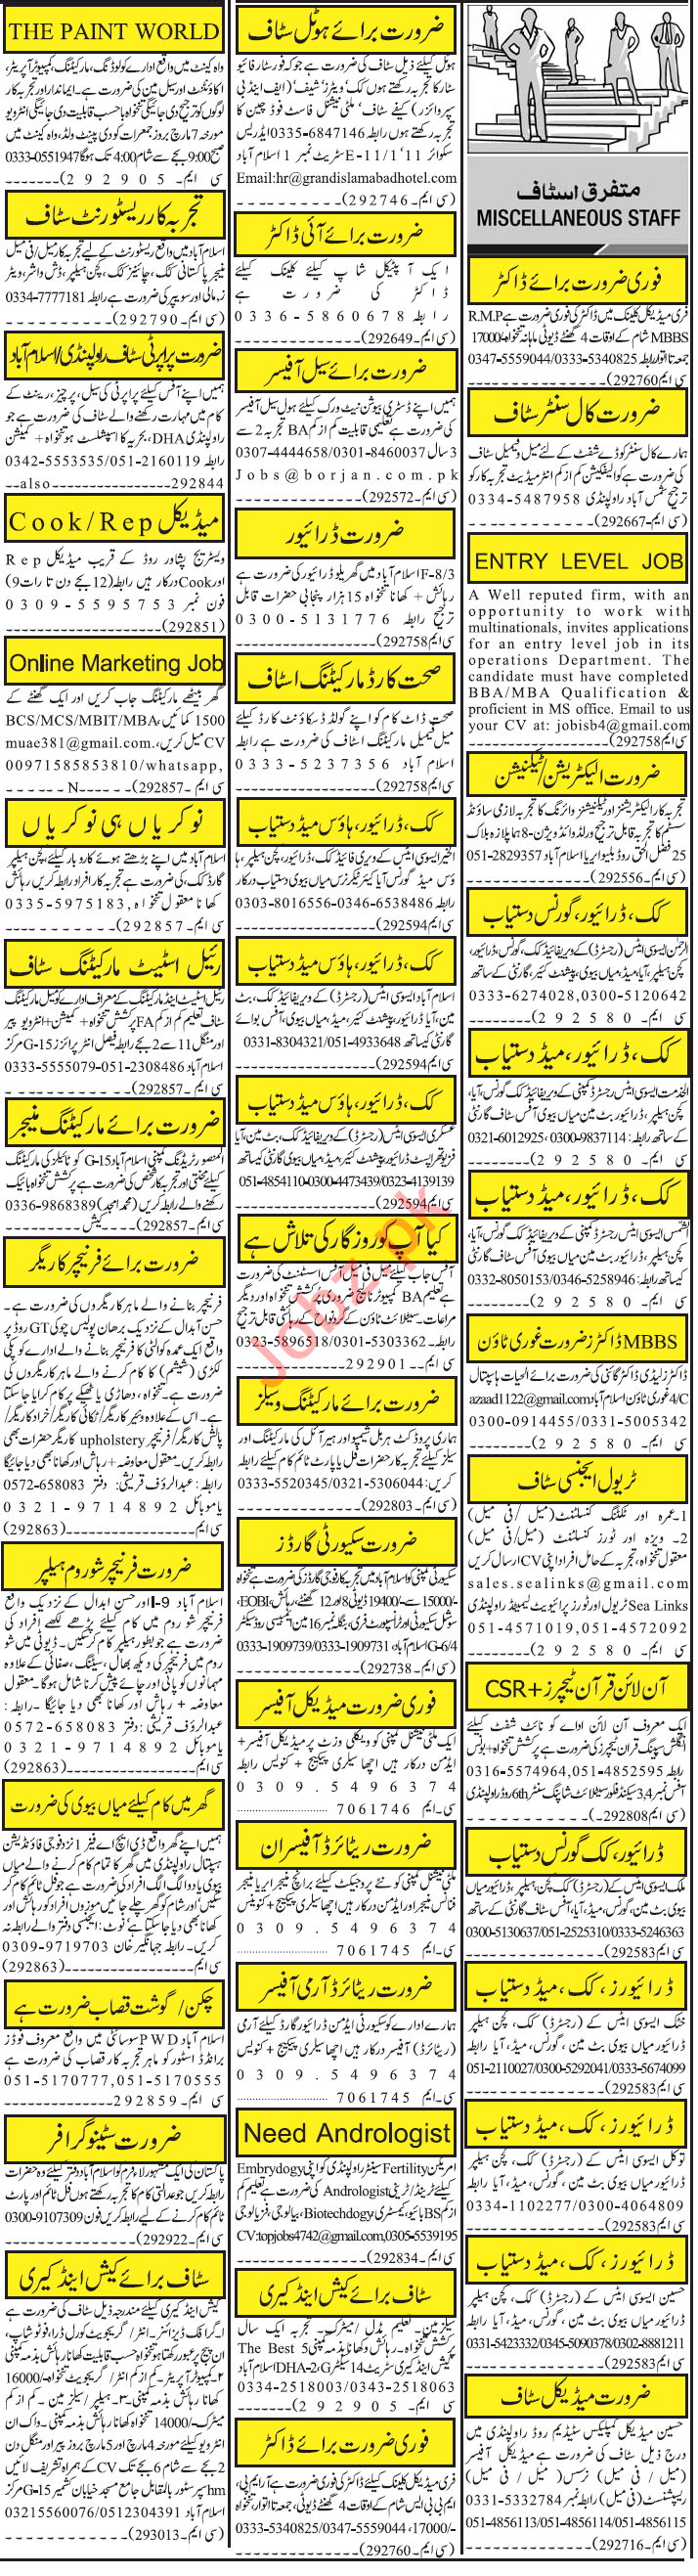 Jang Sunday RWP Classified Ads 3rd March 2019 Multiple Staff